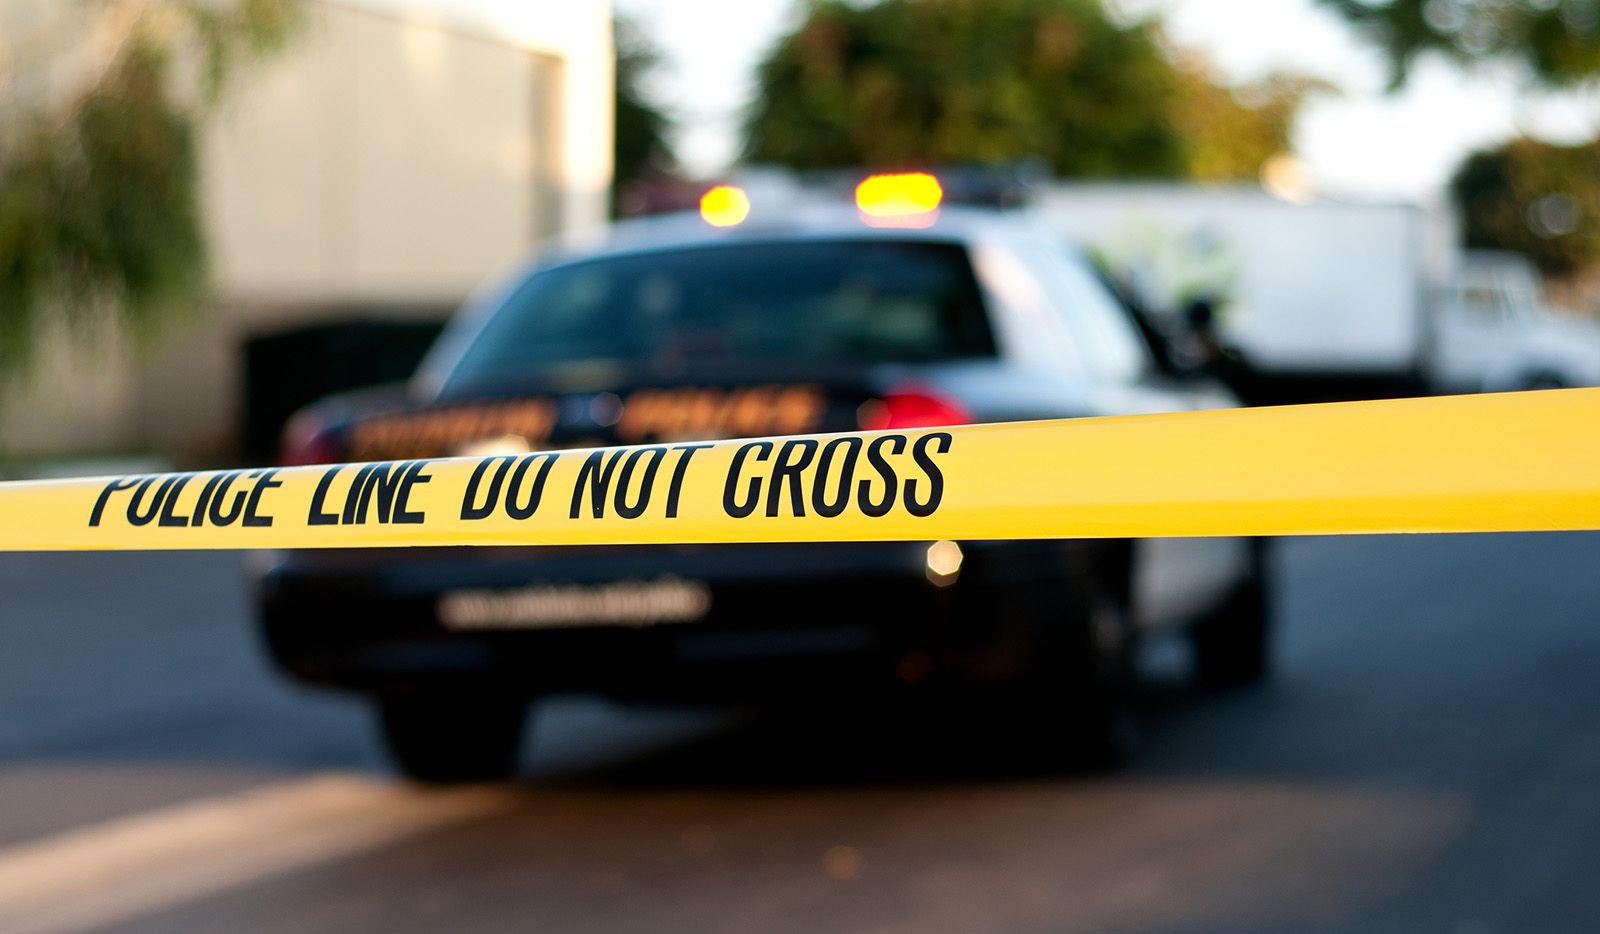 Police say two people were injured, one critically, in a shooting Friday night in Far East Dallas.